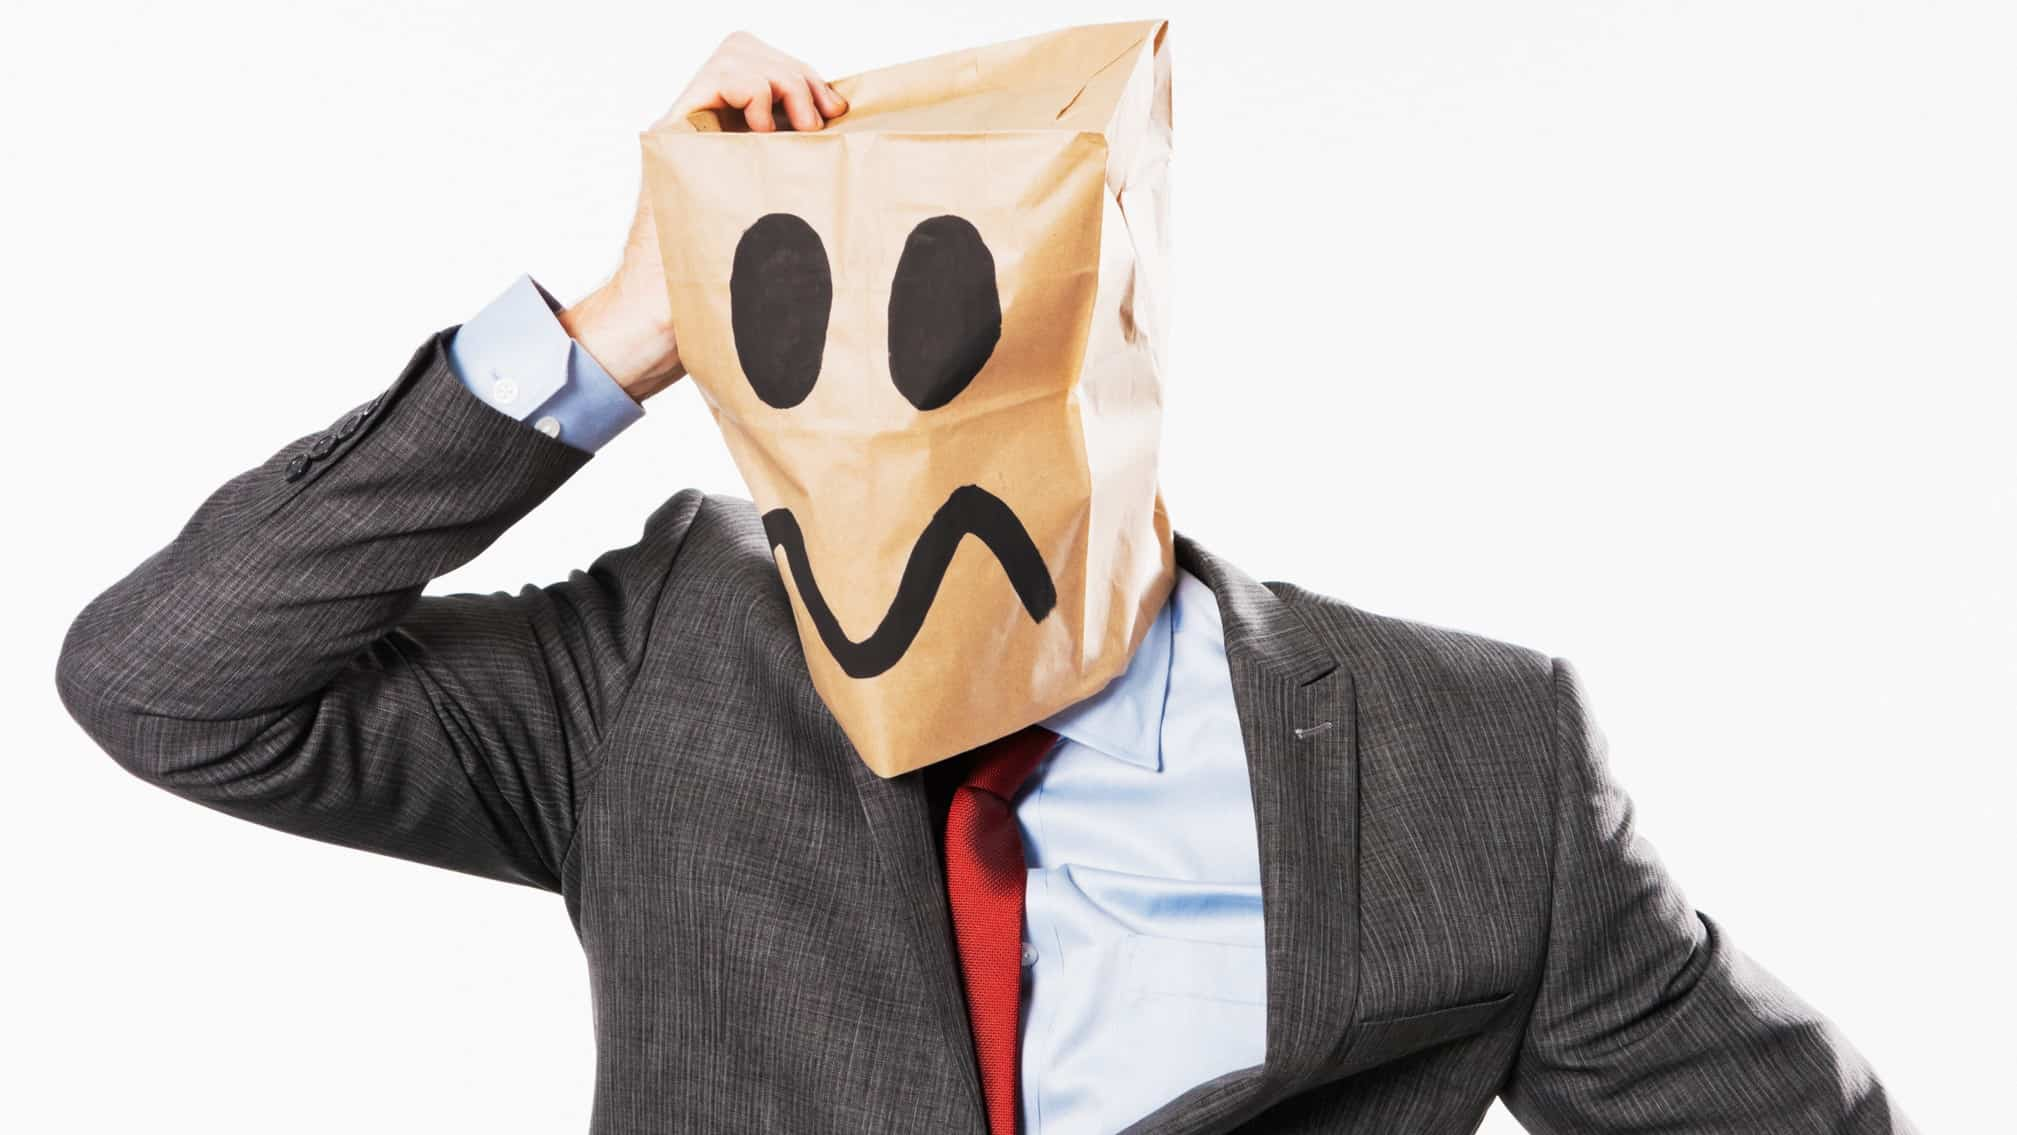 A business man with an idiot face drawn onto a paper bag on his head, indicating a company director using the 'honest idiot'defence